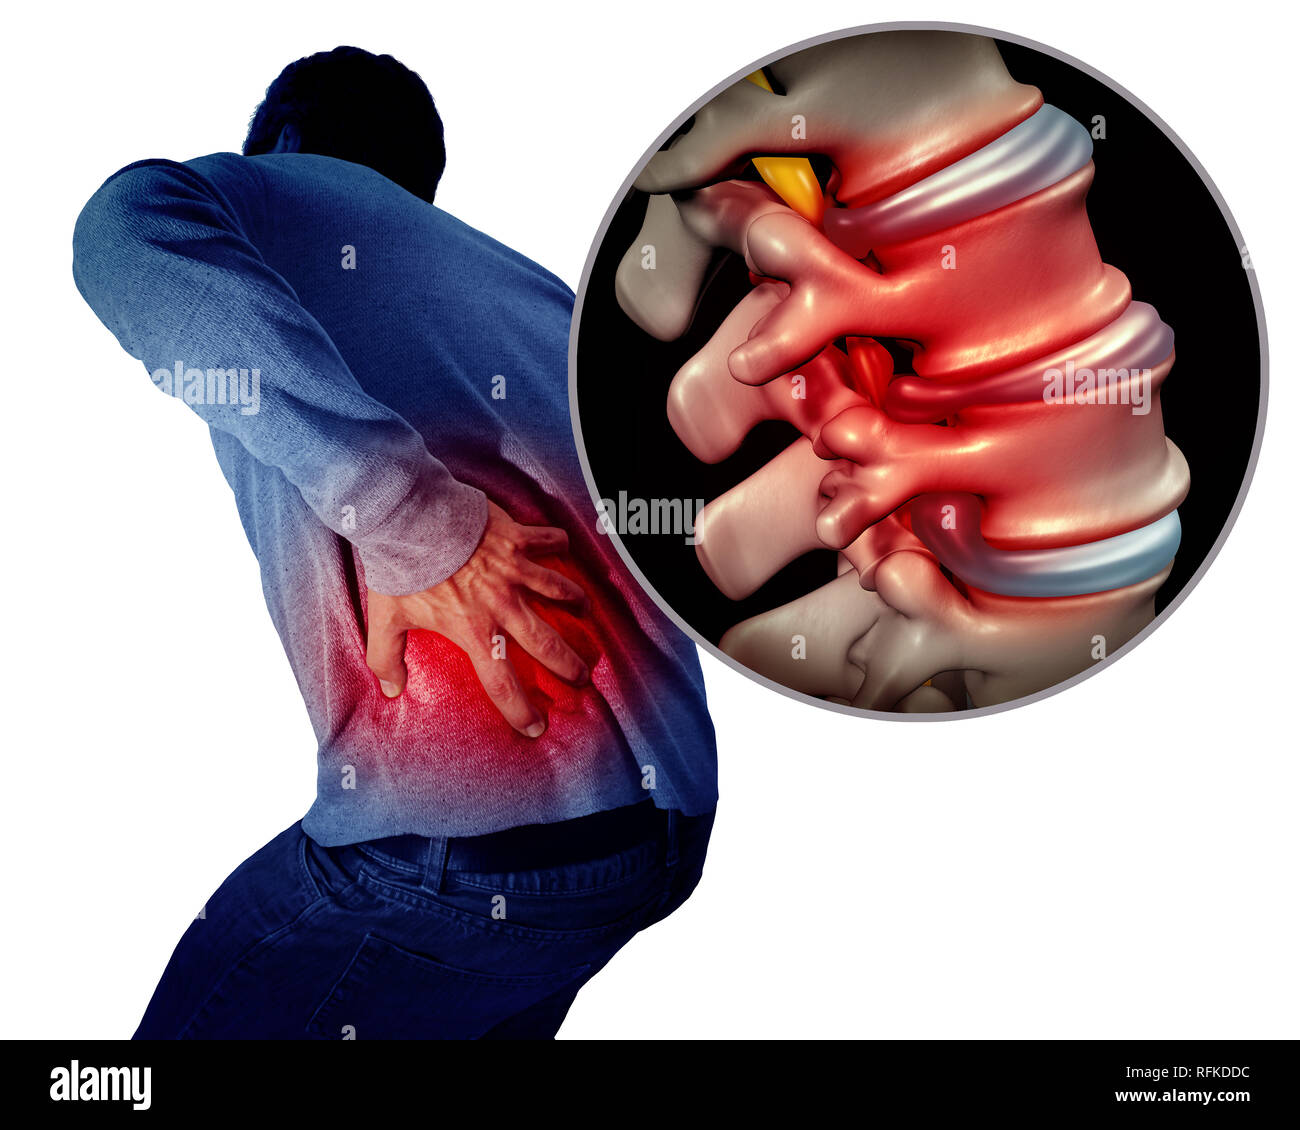 Lower back pain or backache and painful spine medical concept as a person holding the painful spinal area as a medical concept. - Stock Image